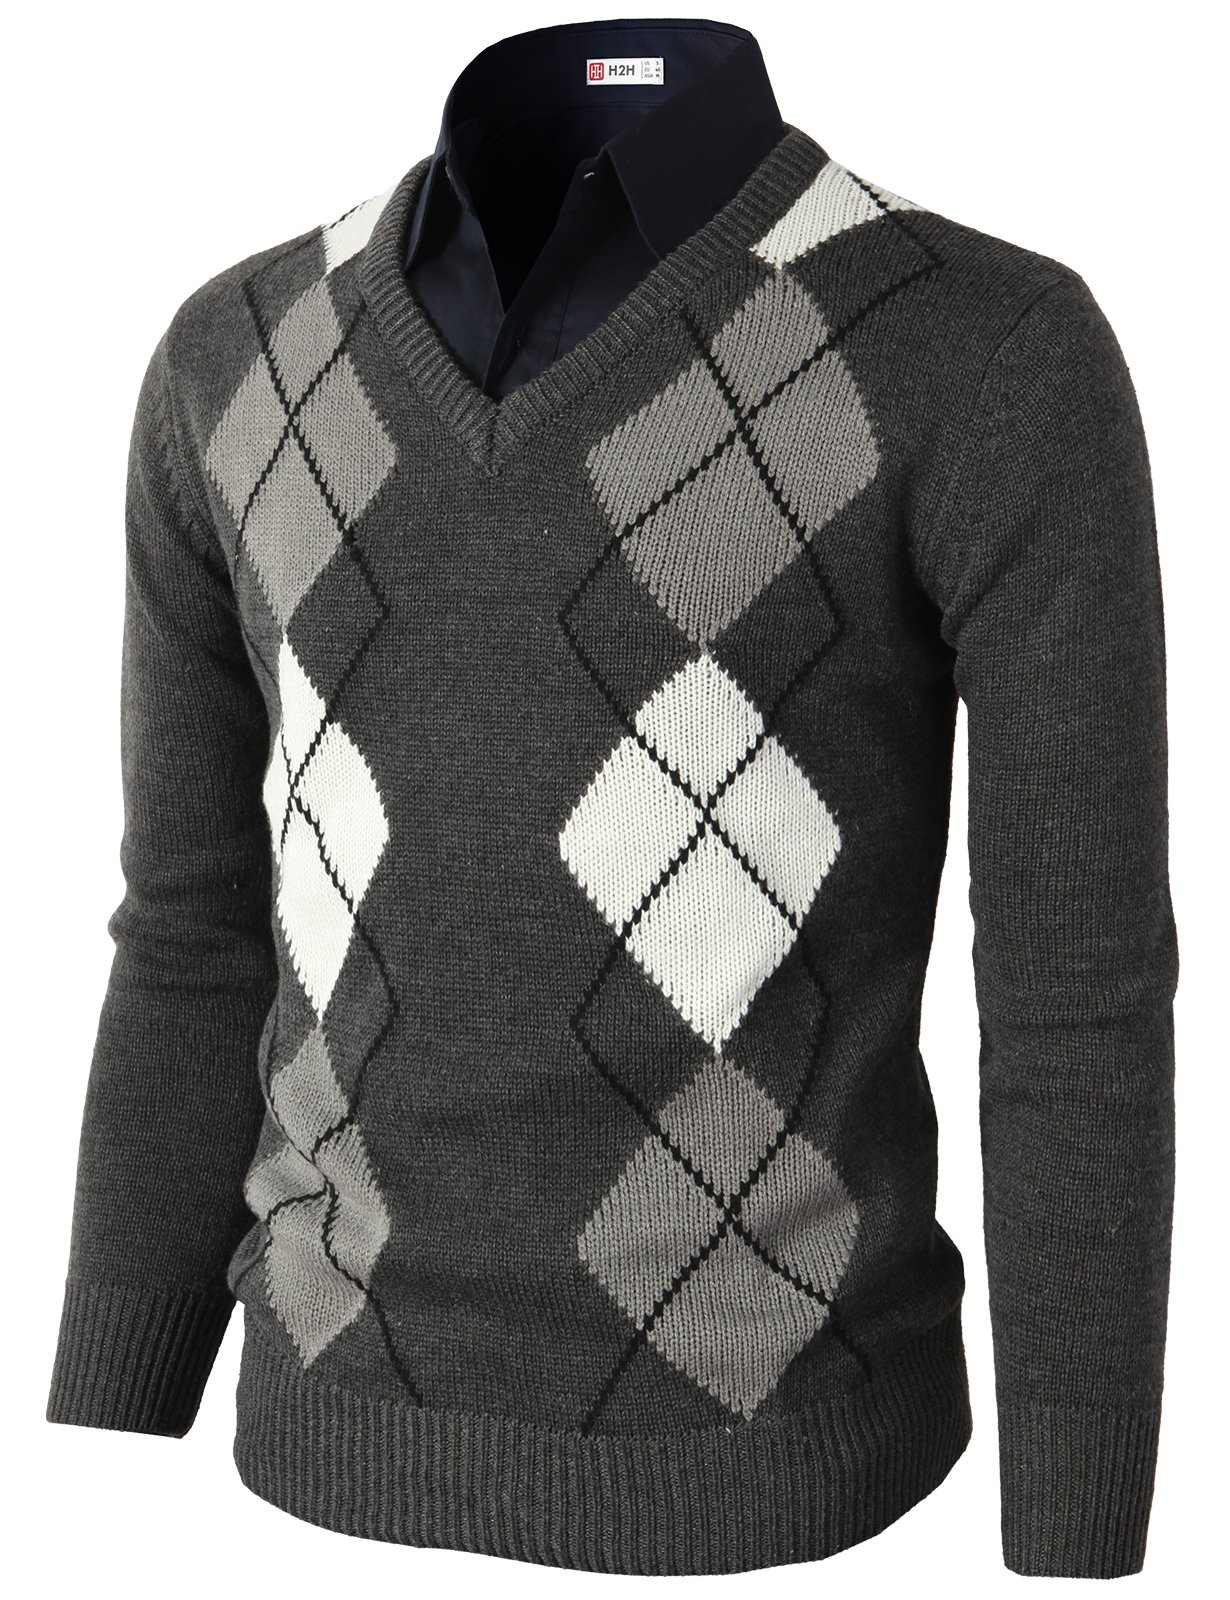 H2H Mens Casual Slim Fit Pullover Argyle Pattern Long Sleeve Sweater Charcoal US S/Asia M (CMOSWL013)